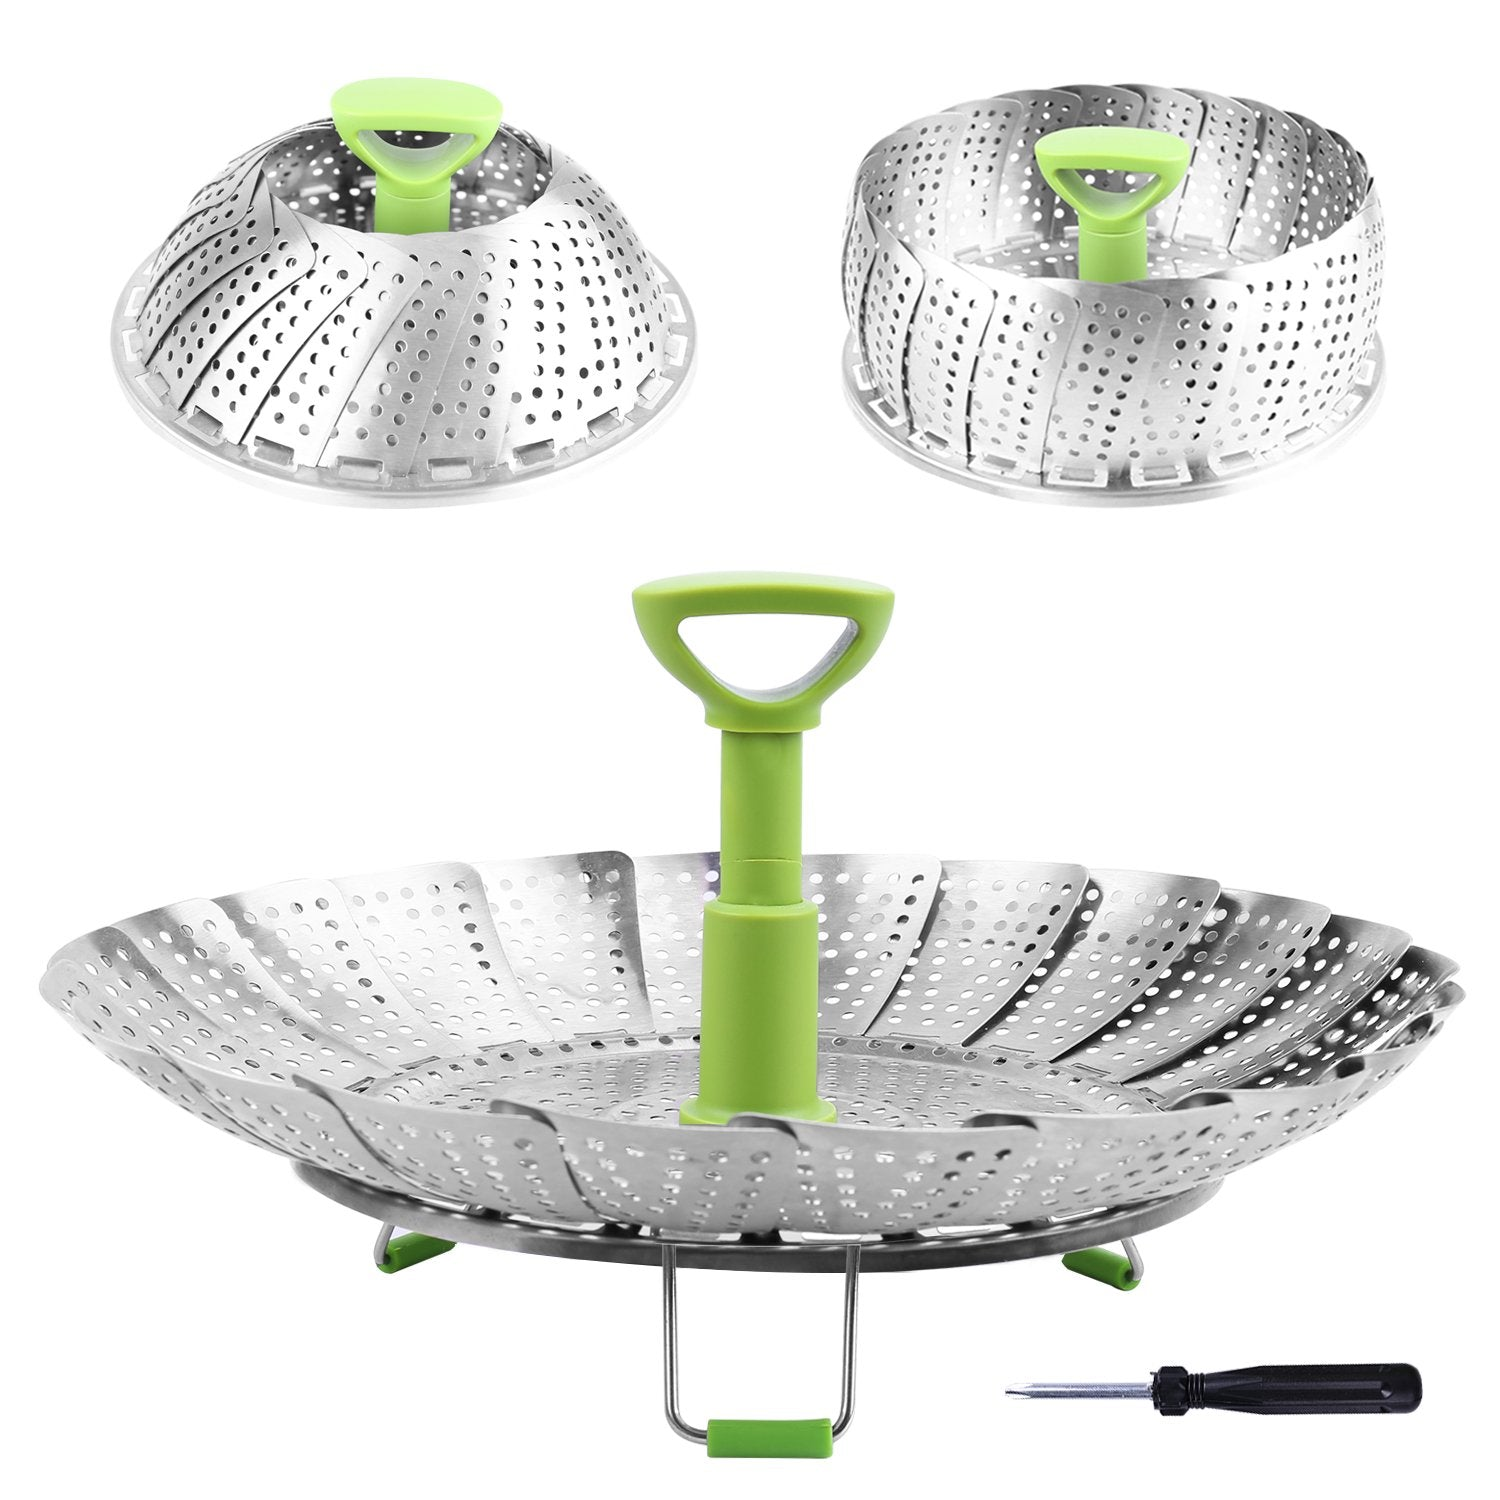 Collapsible Stainless Steel Steamer with Extendable Handle